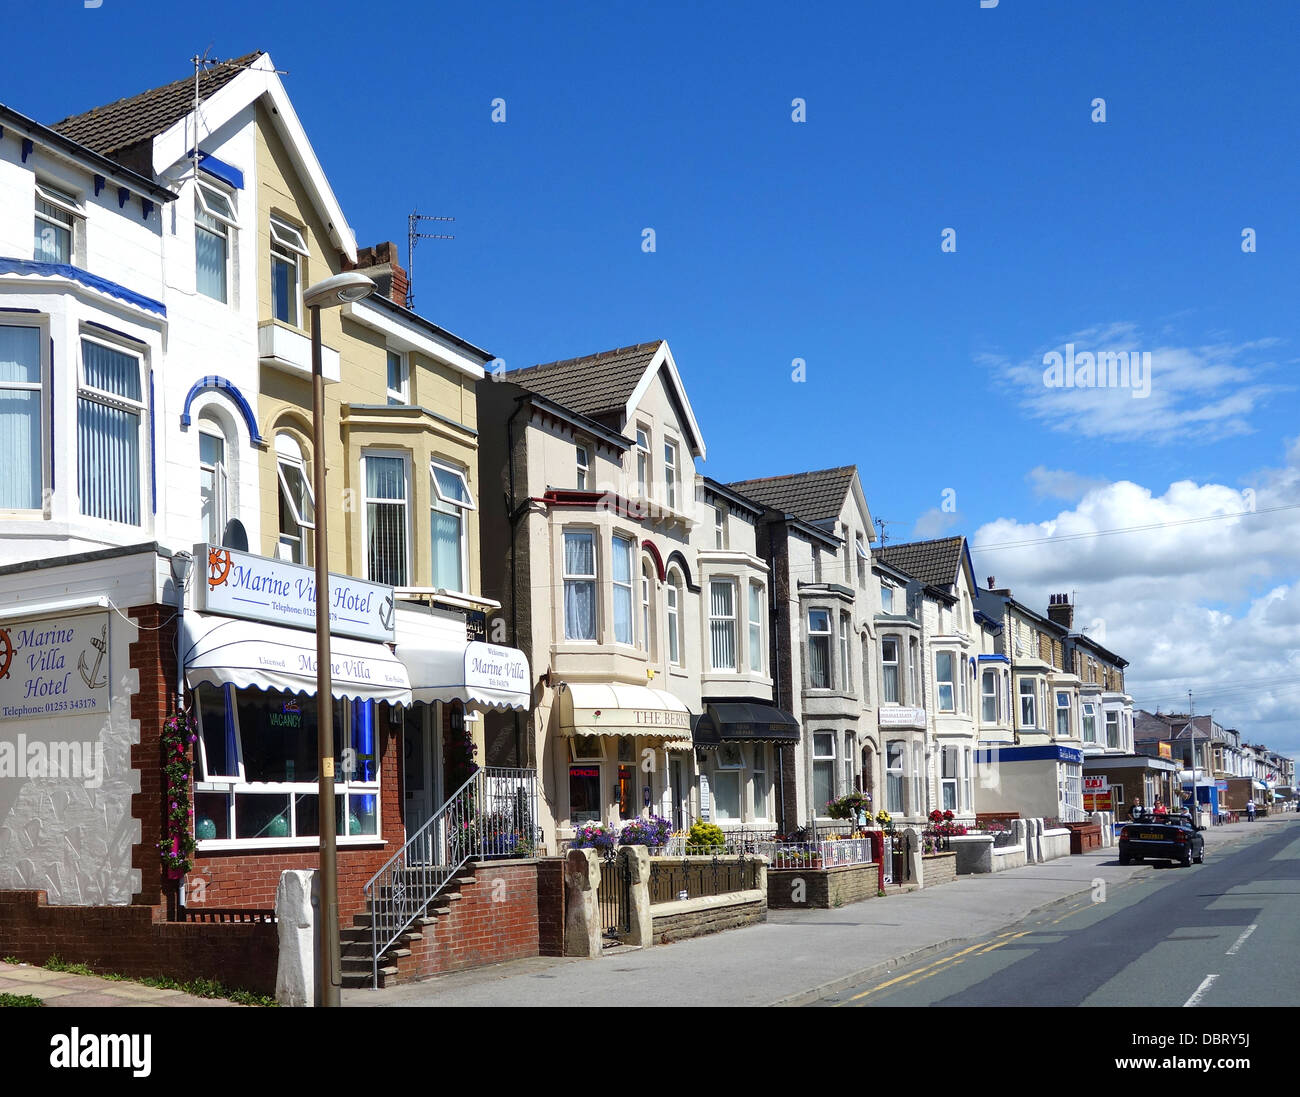 Traditional Bed and Breakfast establishments in Blackpool, England, UK - Stock Image